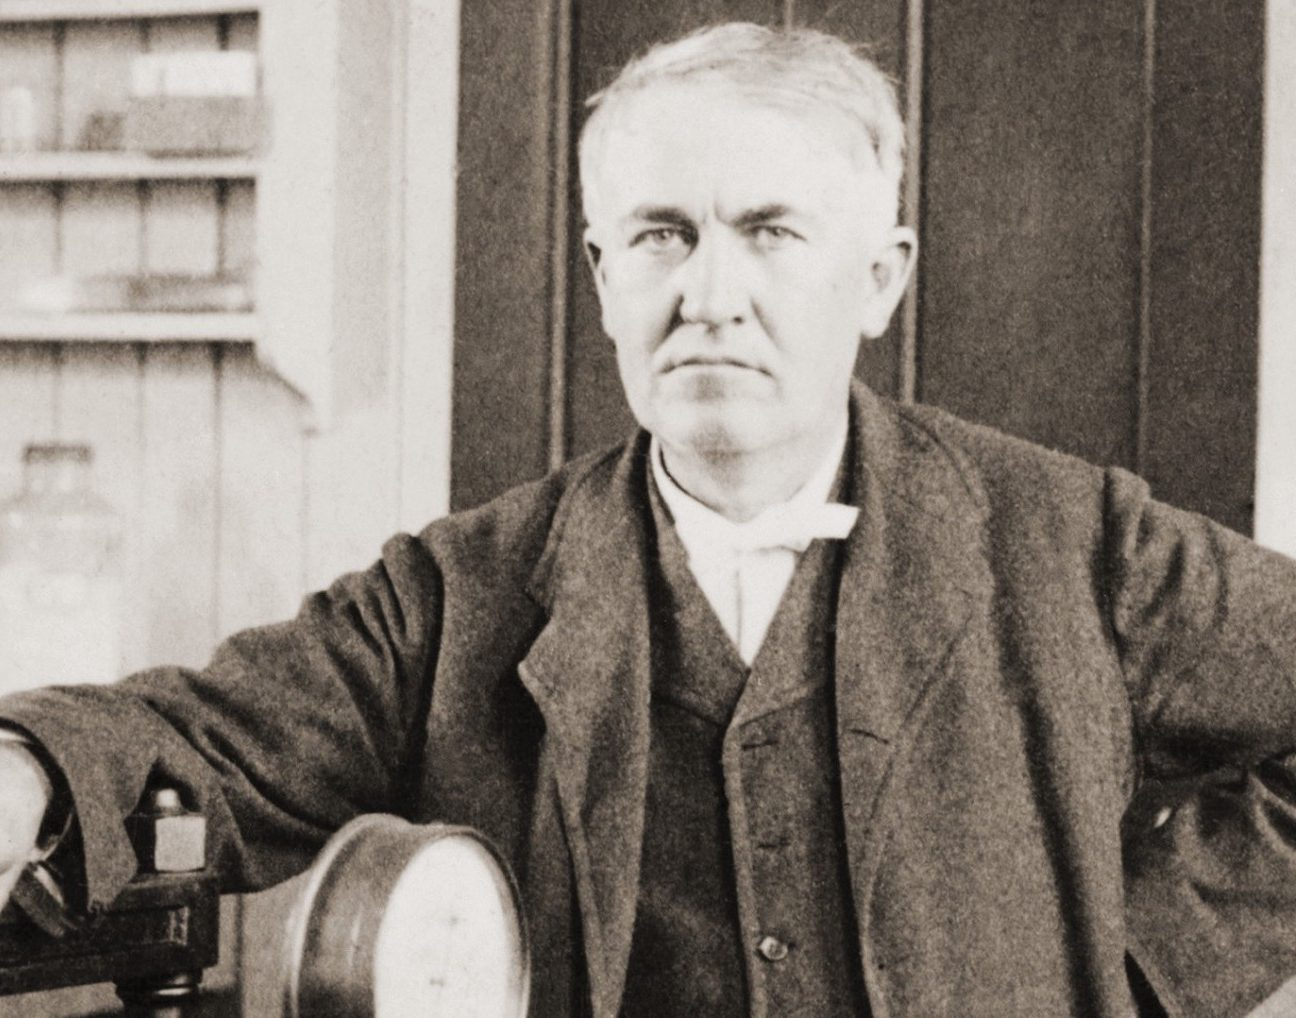 Edison with his inventions